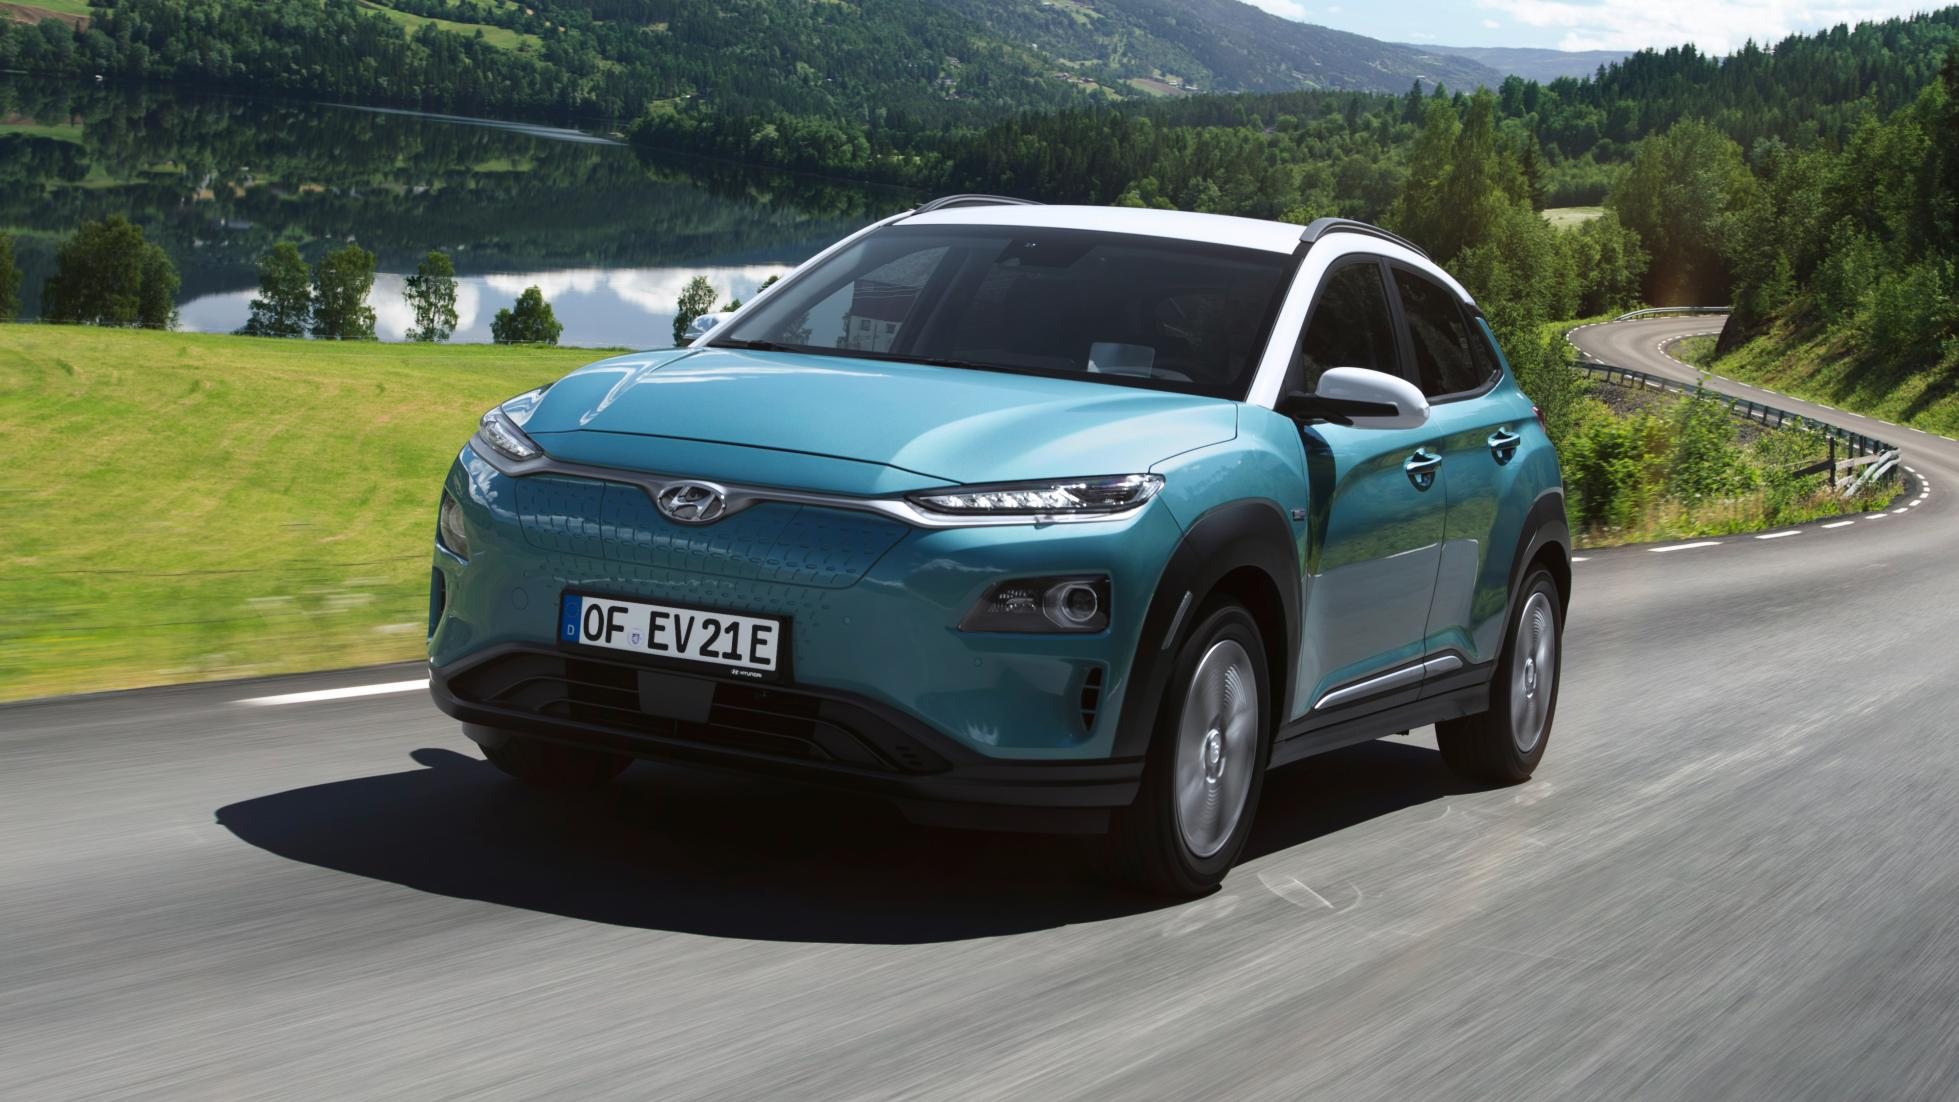 Hyundai Kona Electric review: new BEV tested